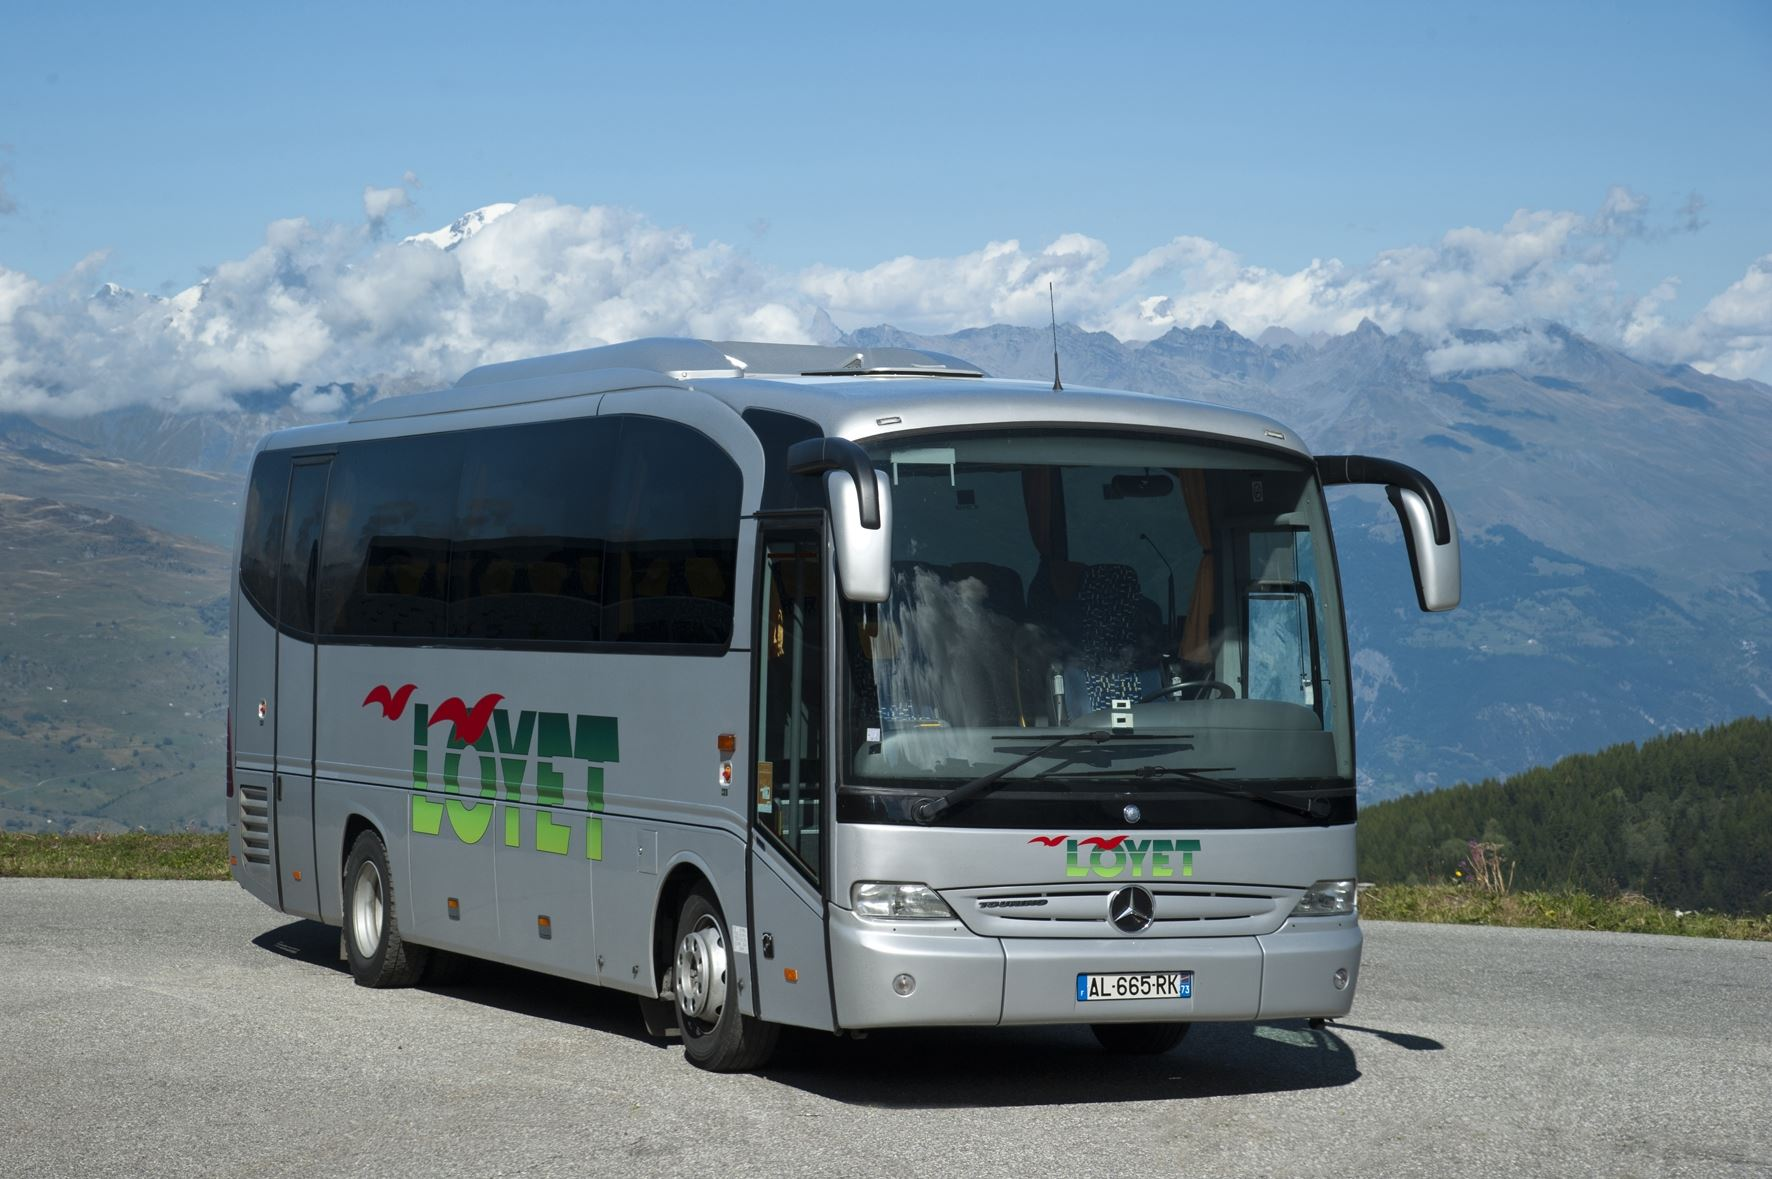 SATURDAY BUS TRANSFER FROM GENEVA AIRPORT TO VAL THORENS